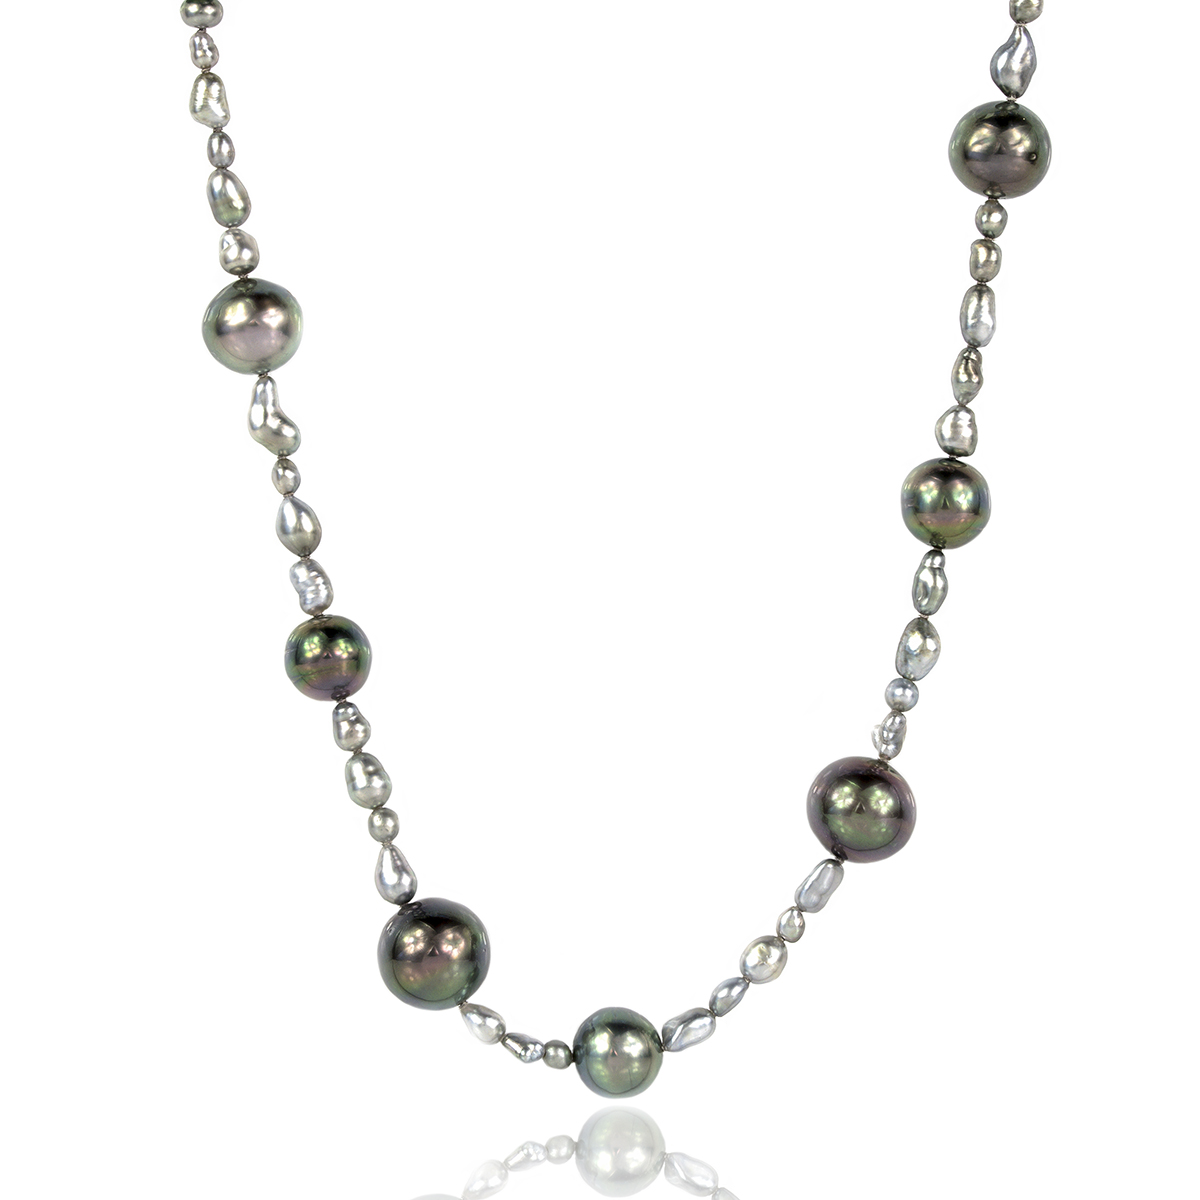 647f39ce574e8 Tahitian and Keshi Pearl Necklace with 69 pearls from 3-12.8mm on silver  and pyrite magentic clasp